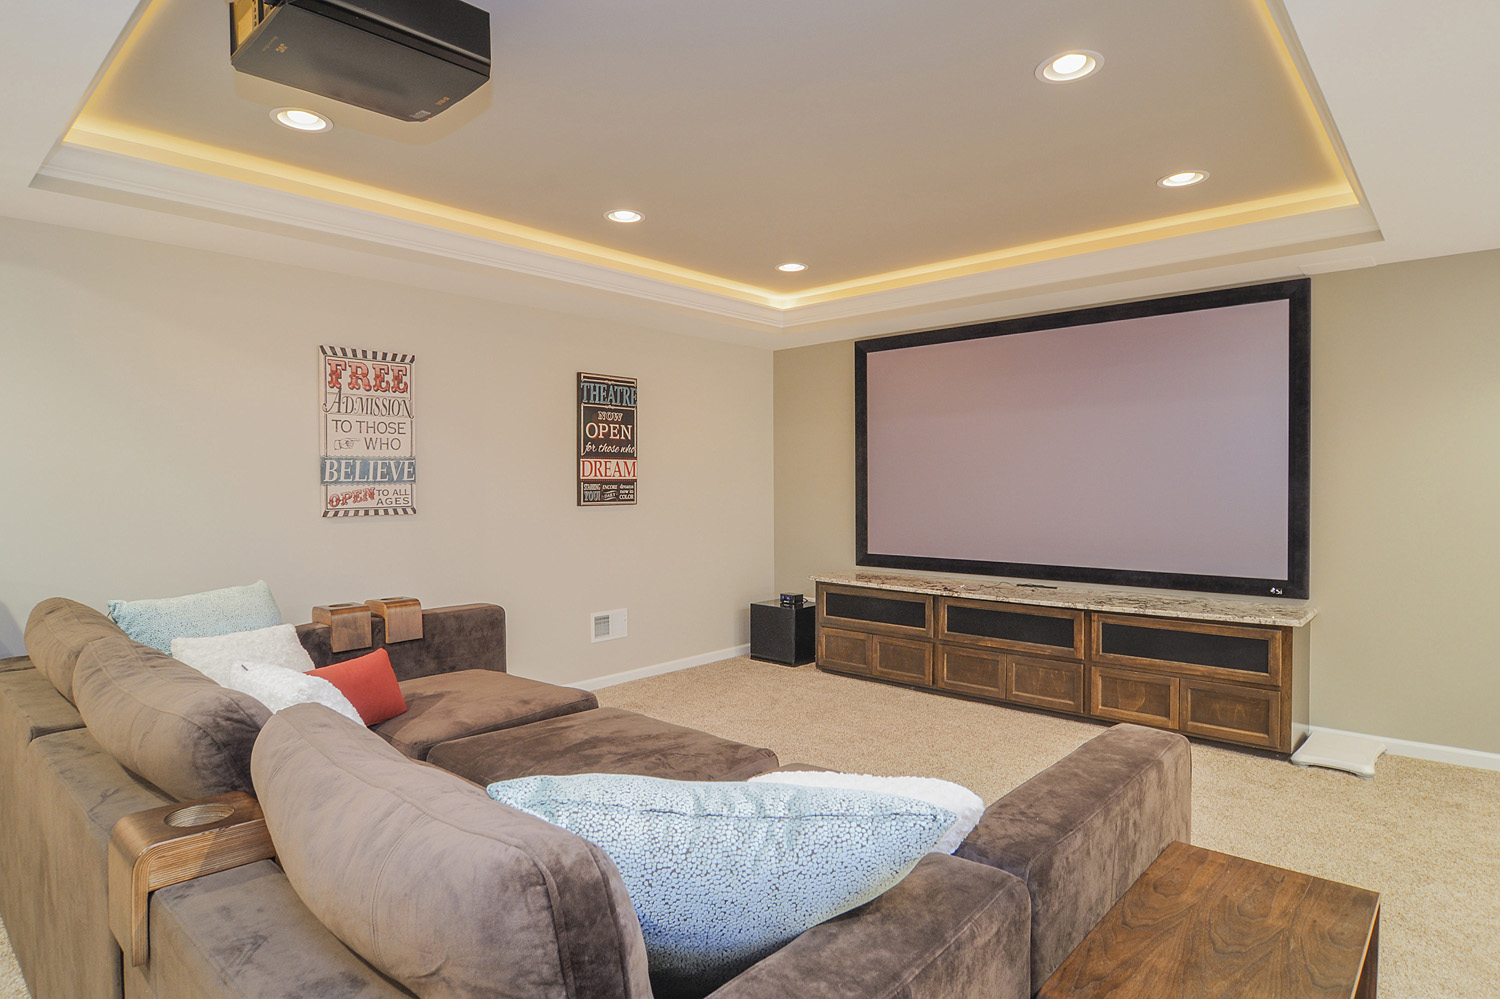 Geoff lisa 39 s basement remodel pictures home remodeling contractors sebring services - Basement design services ...